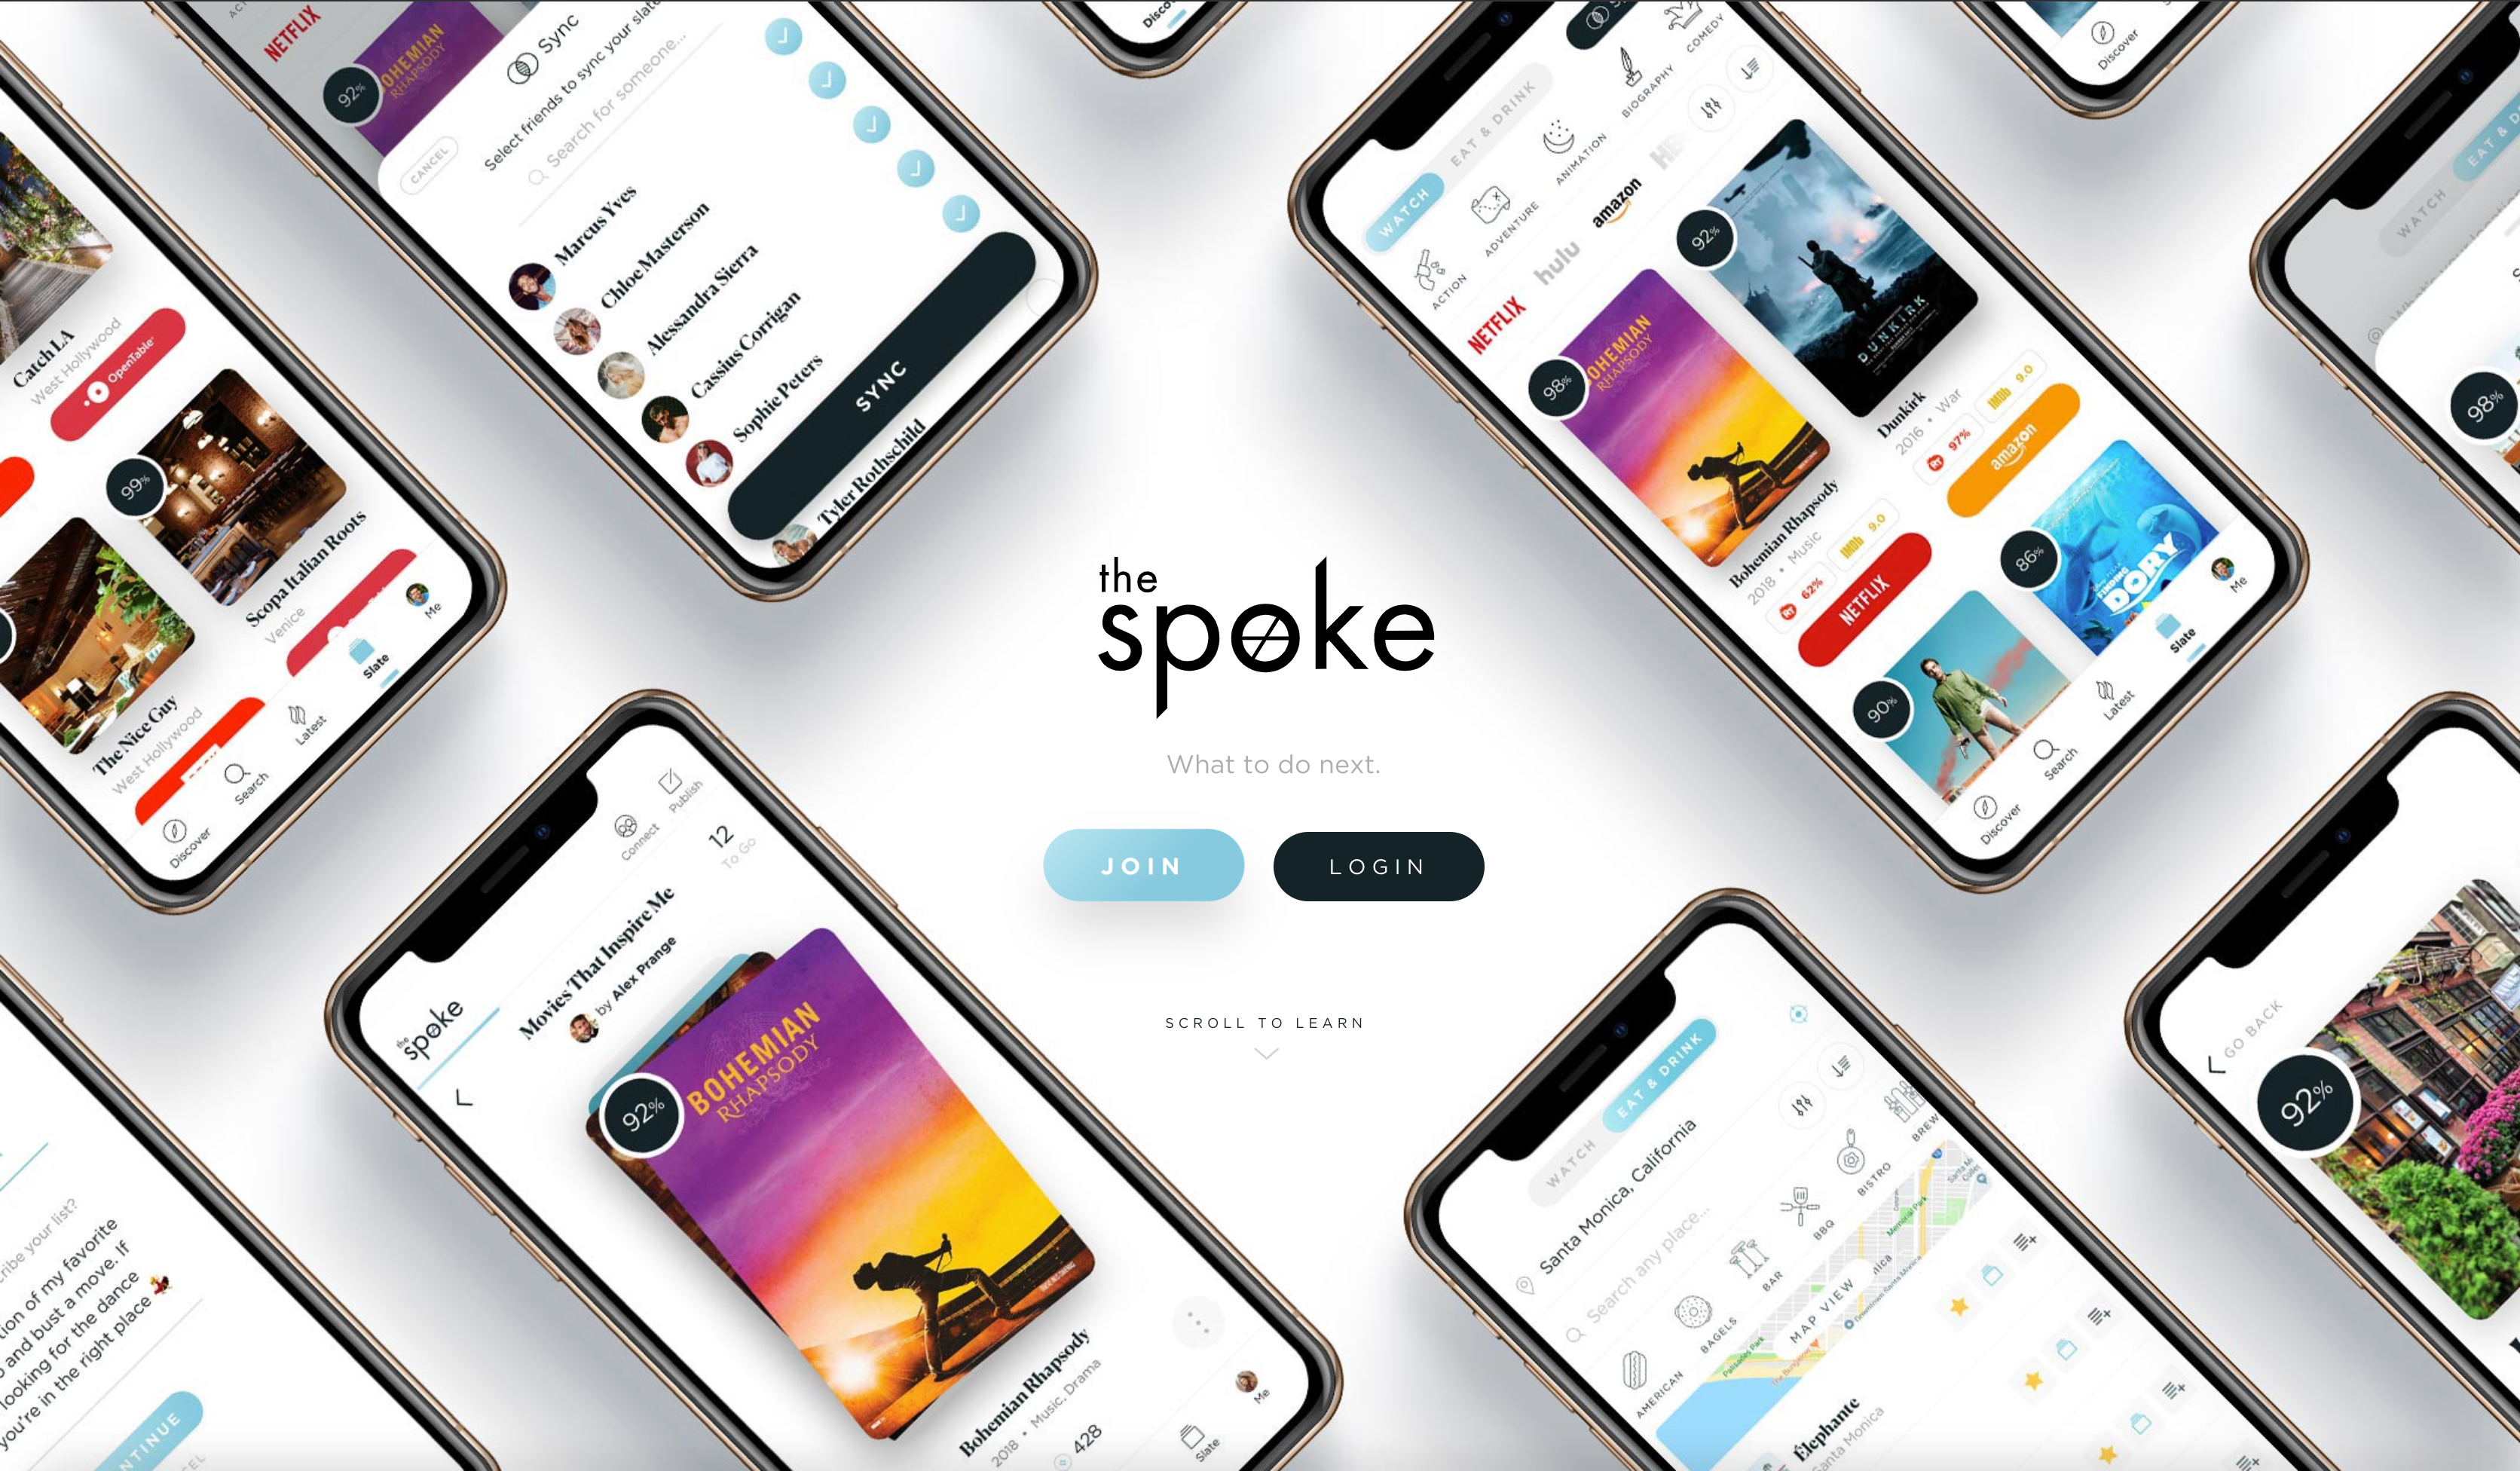 Hot new product on Product Hunt The Spoke 2.0 A social